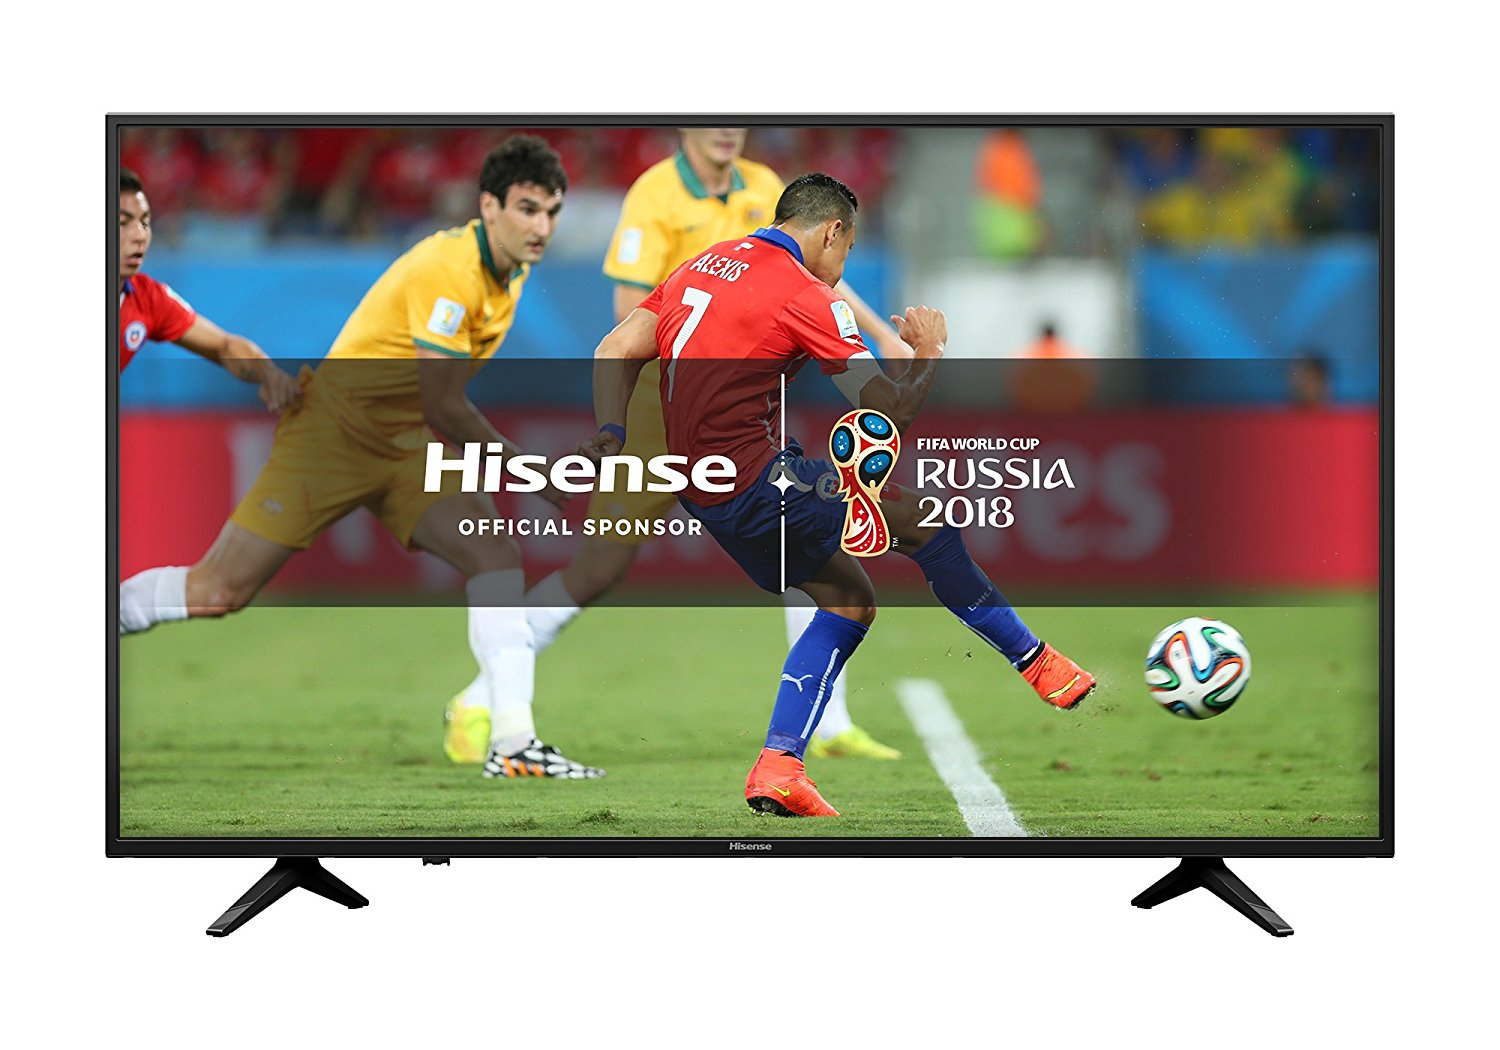 Hisense H65A6200UK 65-Inch 4K Ultra HD Smart TV with Freeview Play Ultra HD 4K HDR TV Hot Deals 2018 most affordable 65 inch tv